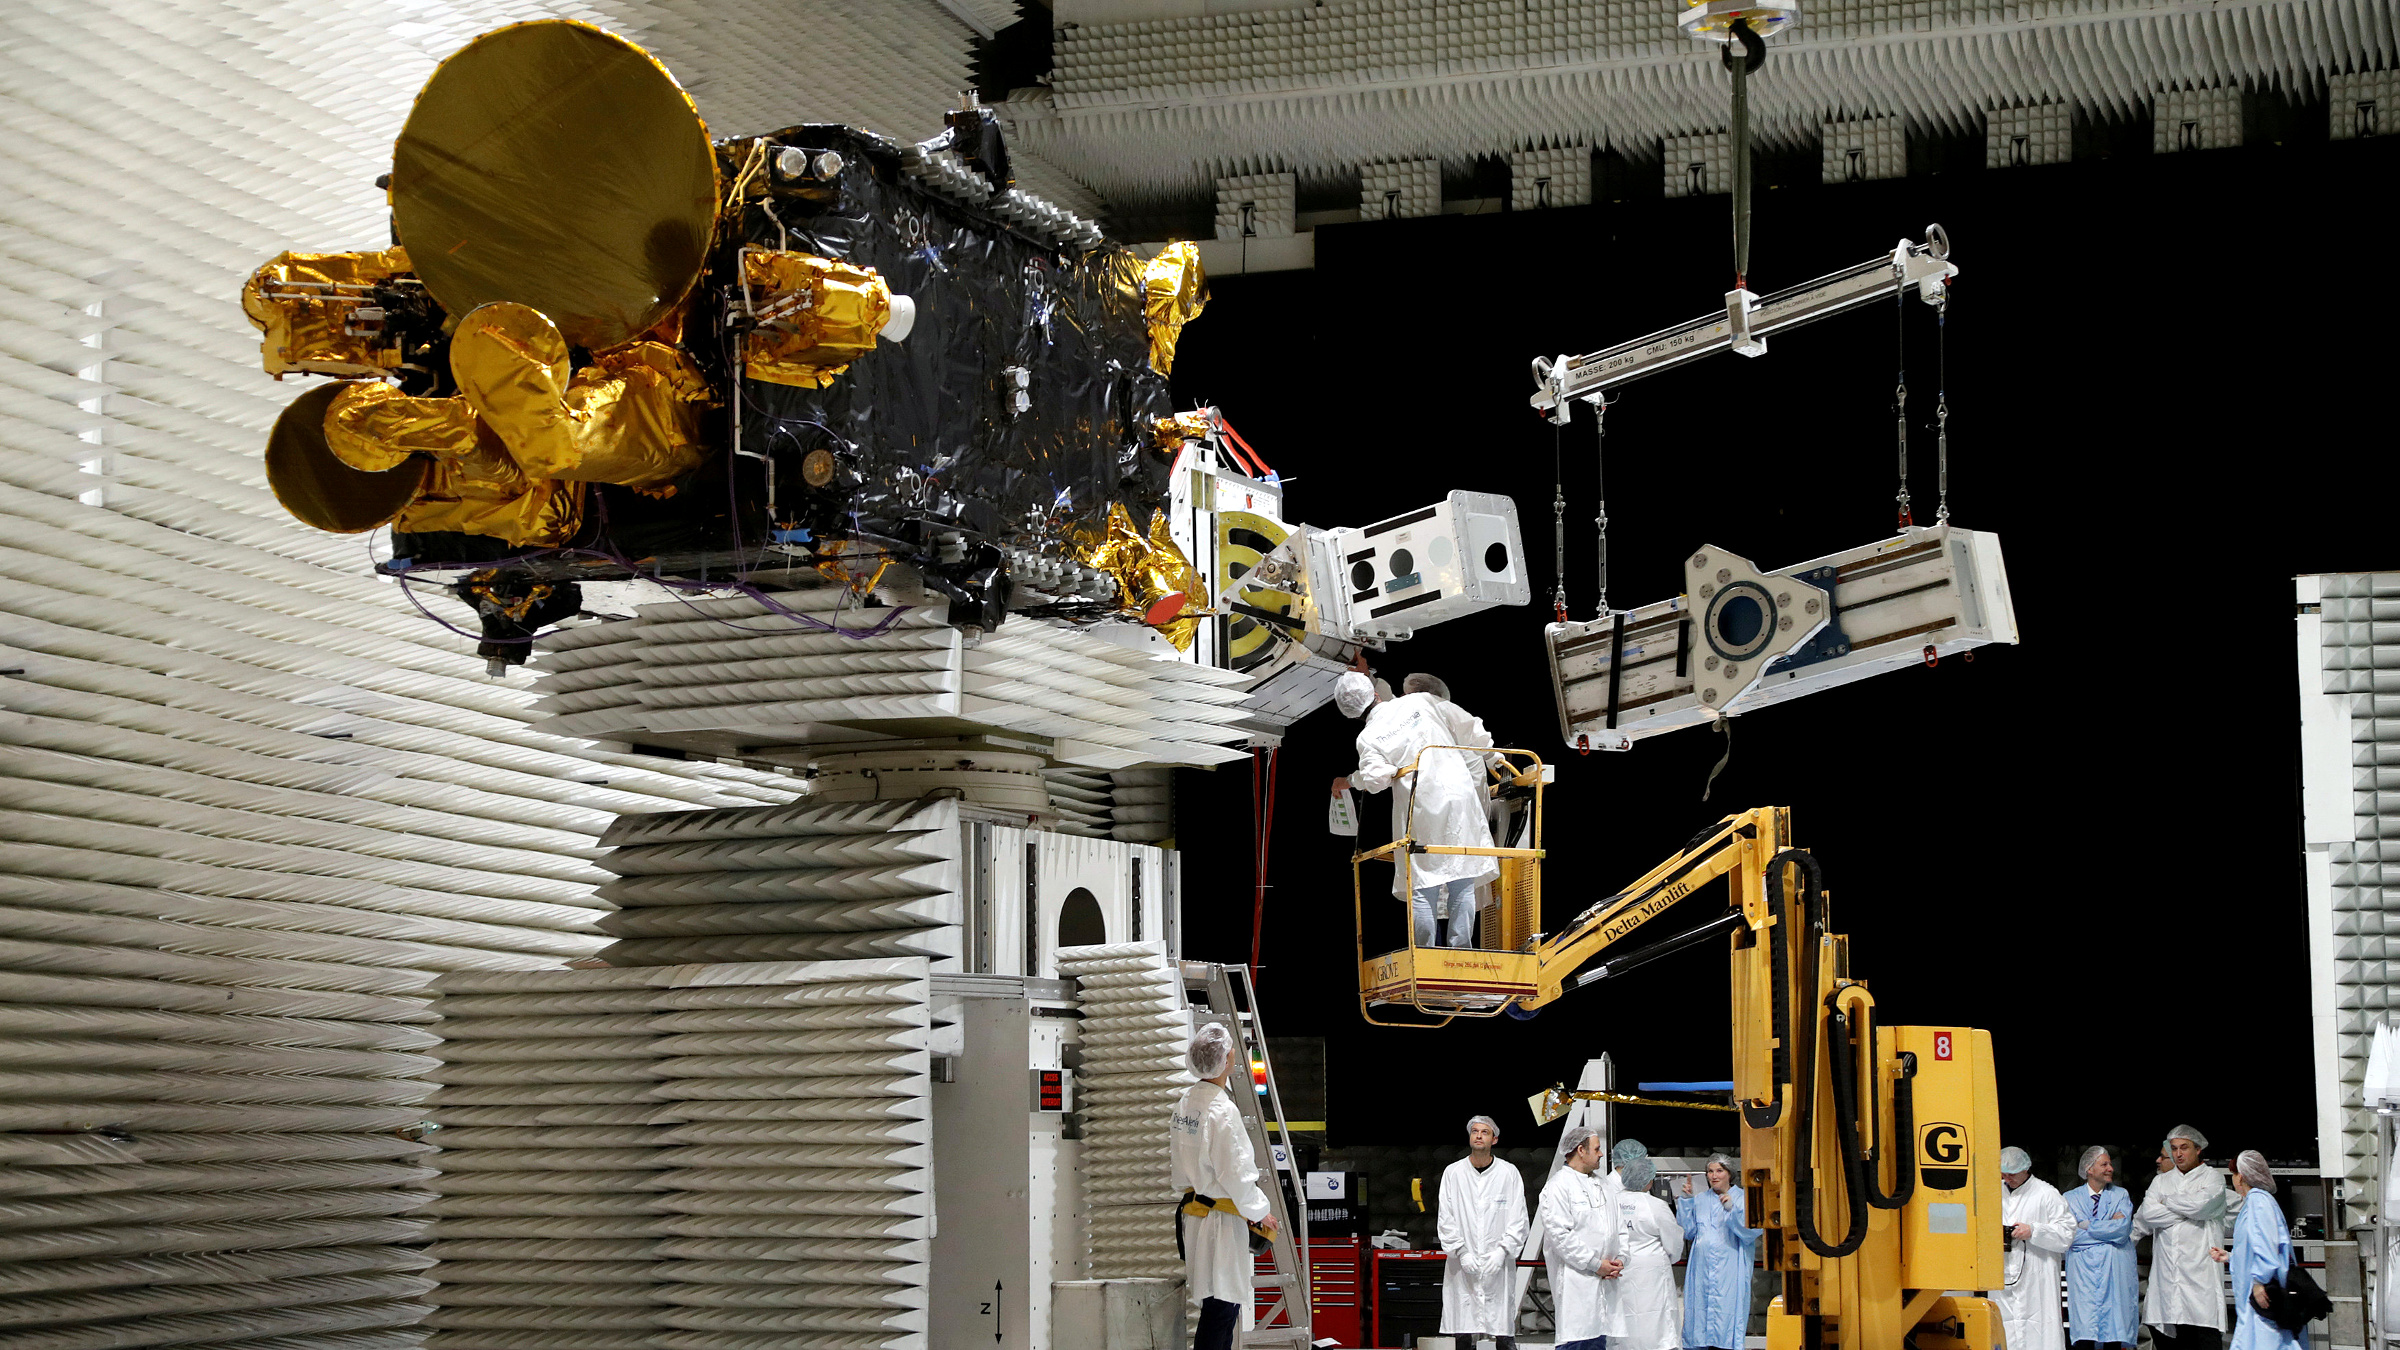 Technicians work on the Korean satellite Koreasat 5A in the clean room facilities of the Thales Alenia Space plant in Cannes, France, February 3, 2017.